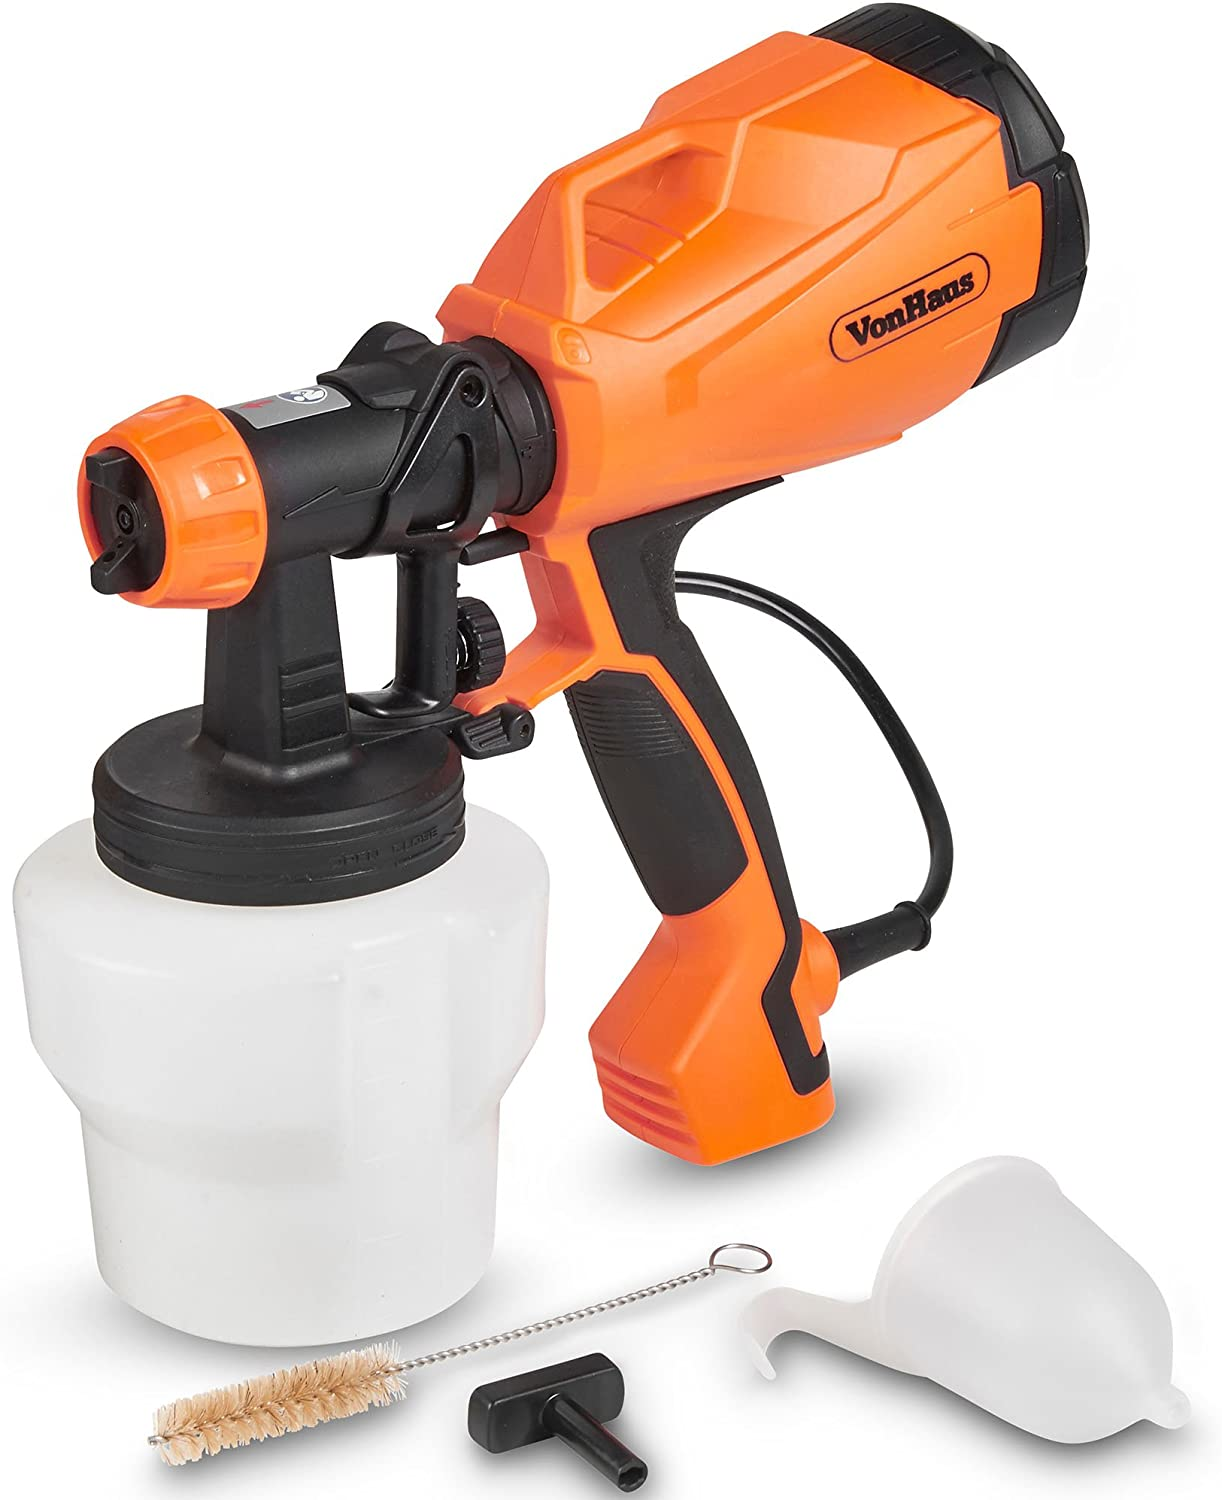 How Much To Rent A Paint Sprayer